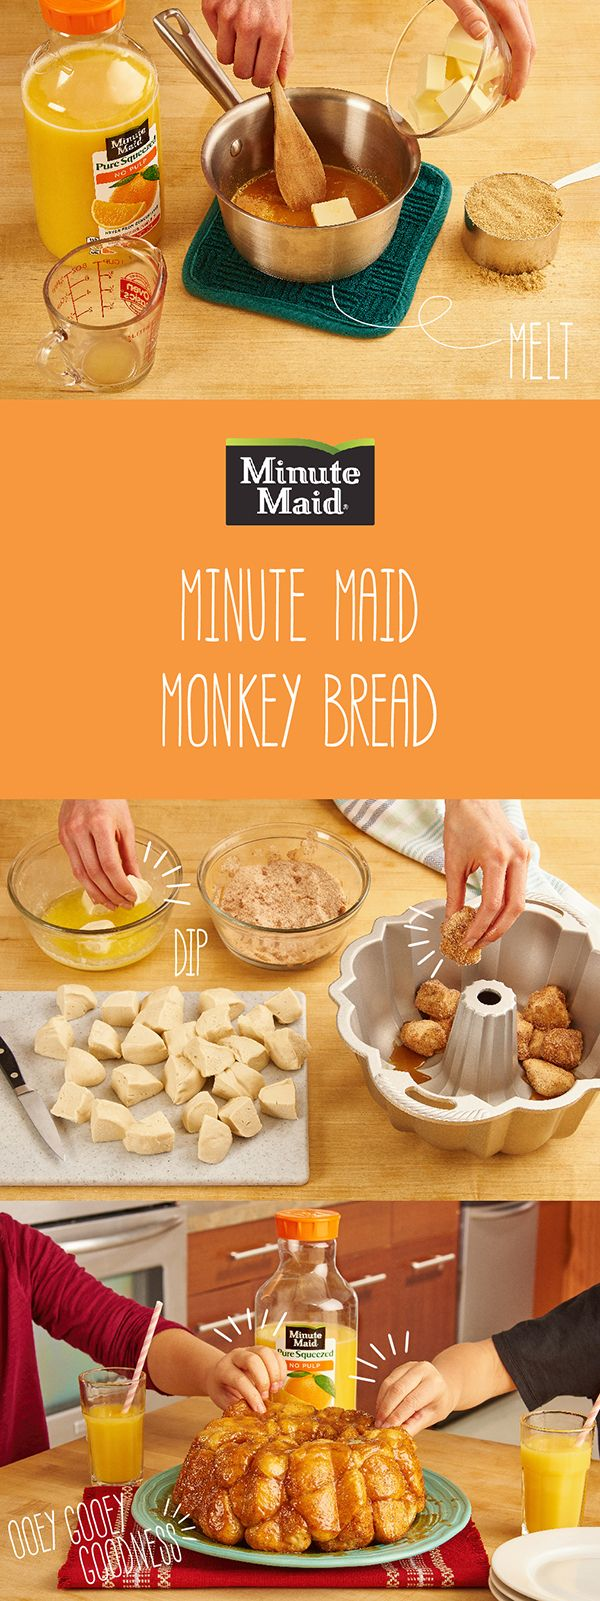 Easy, fun and oh-so delicious, treat your kids to a classic with this easy, Minute Maid Orange Juice glazed Monkey Bread recipe. The time spent together is time #doingood!